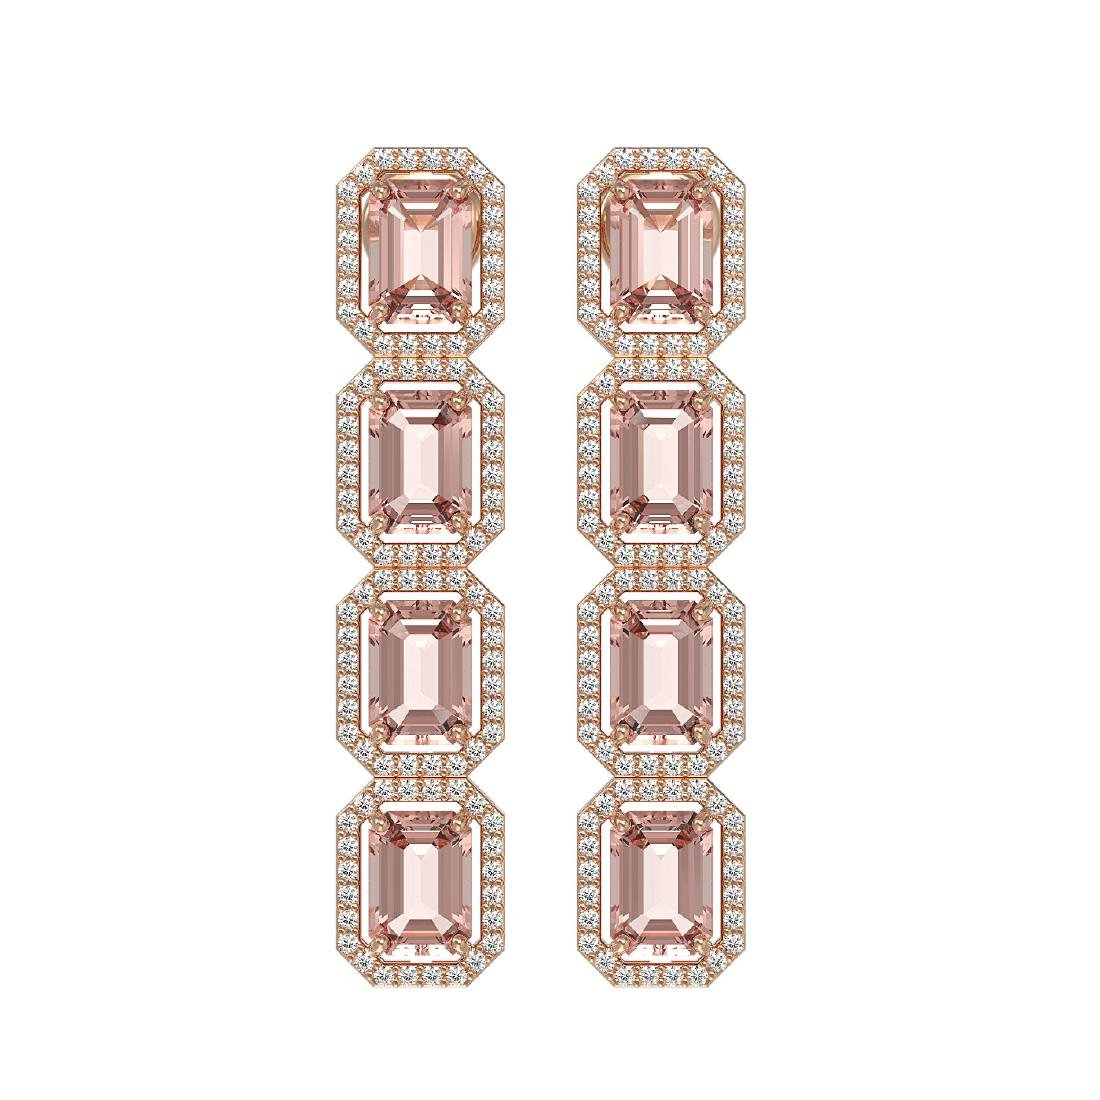 10.73 CTW Morganite & Diamond Halo Earrings 10K Rose